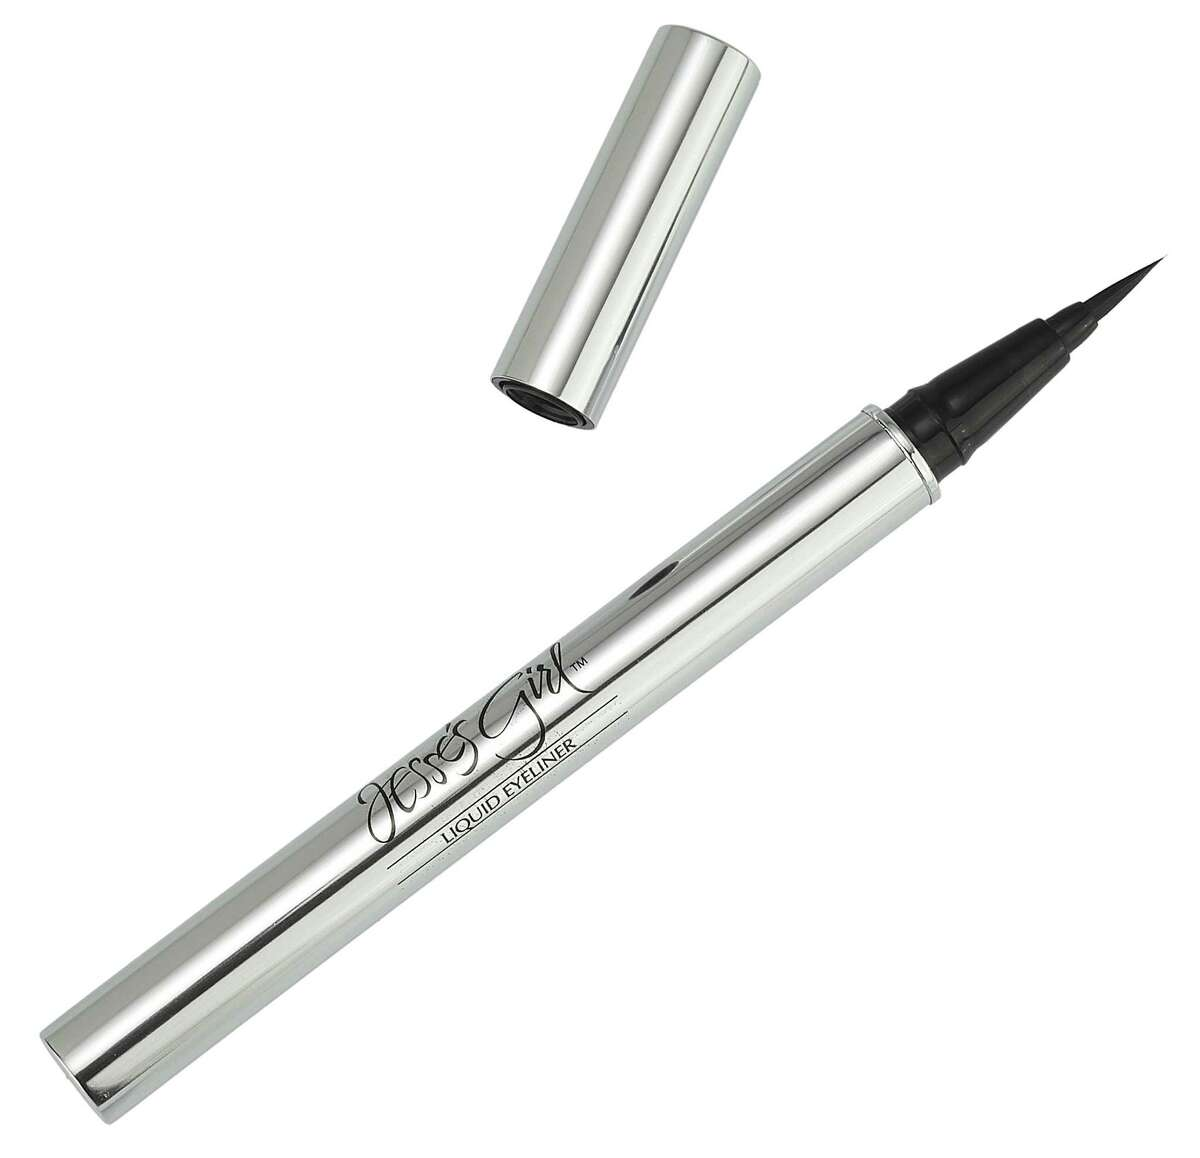 Jesse's Girl Waterproof Liquid Eyeliner: Achieve a precise cat-eye with its long calligraphy-style brush. It goes on smooth, is quick-drying and resists smudging. $6.99 at jessesgirlcosmetics.com.